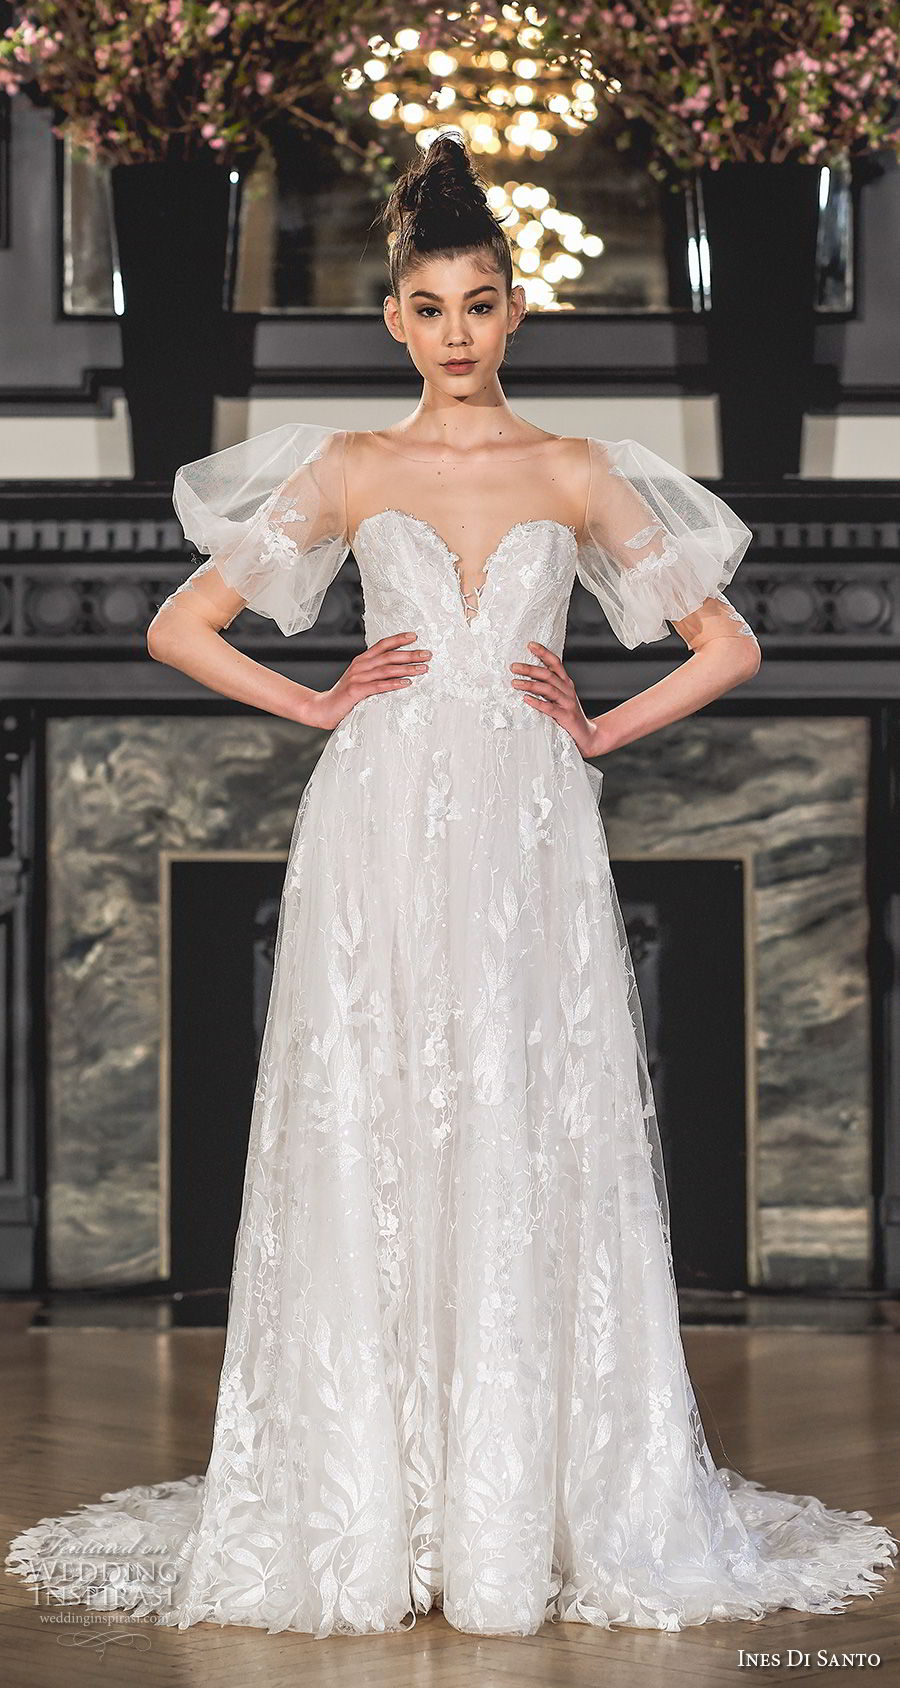 Ines di santo spring 2019 wedding dresses modern for Ines di santo wedding dresses prices